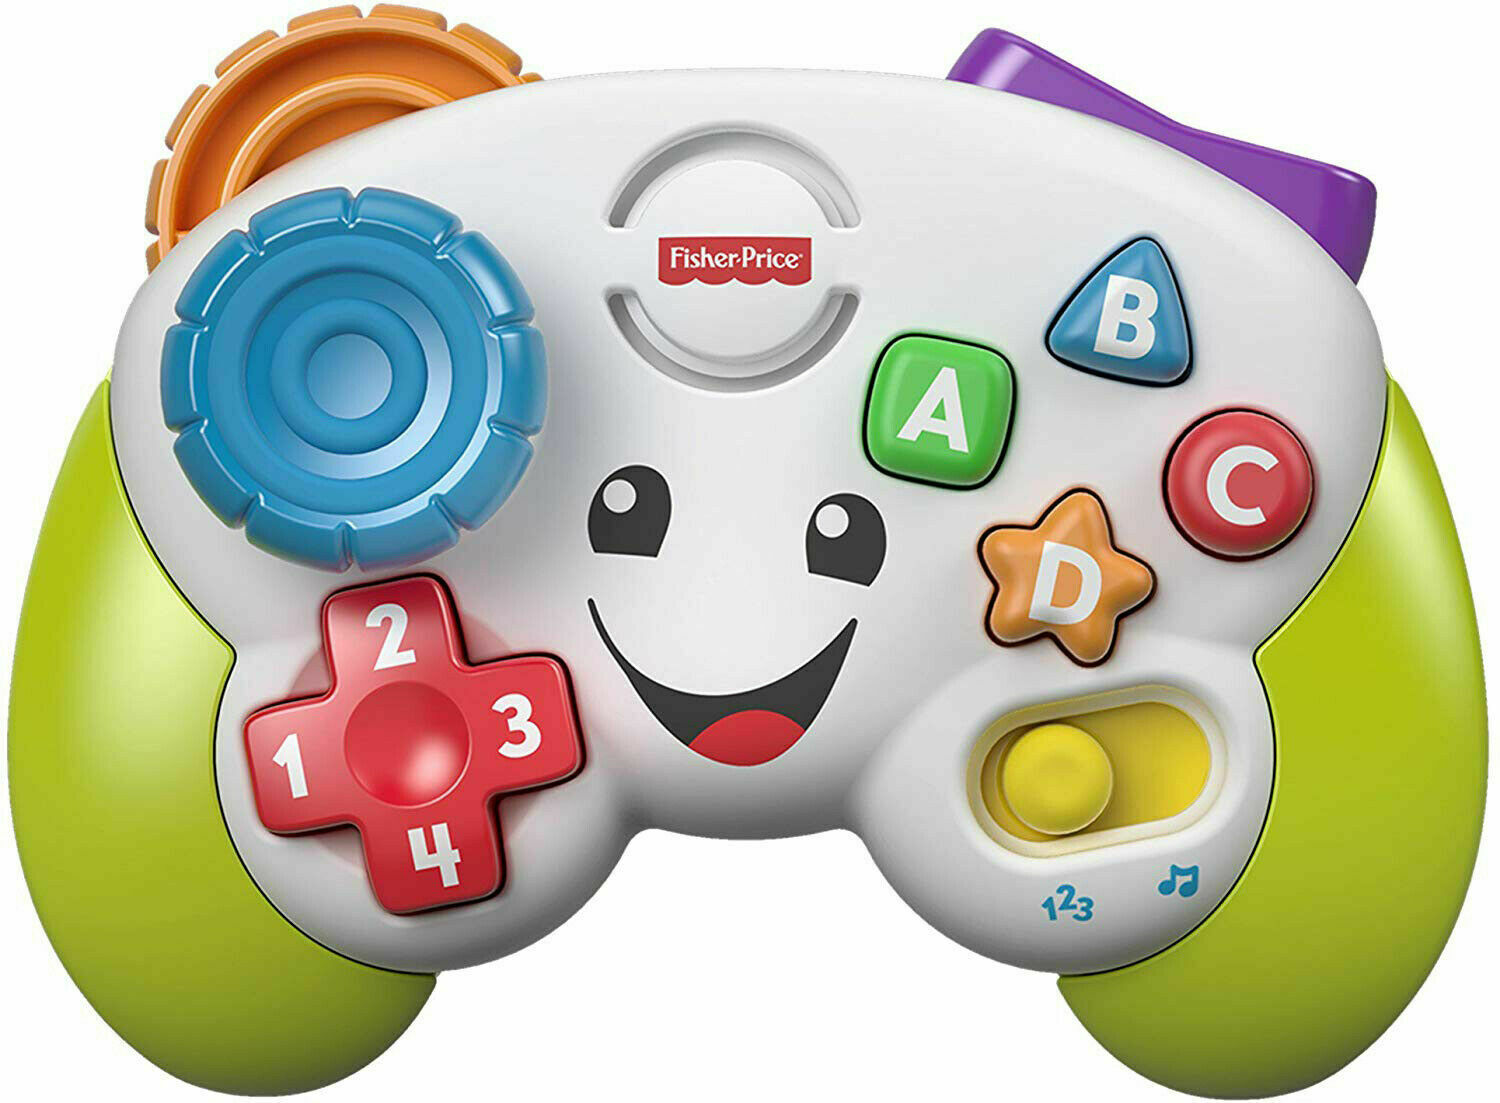 Educational Toys For Baby Learn Fisher-Price Baby Game Controller Toddler Play 5